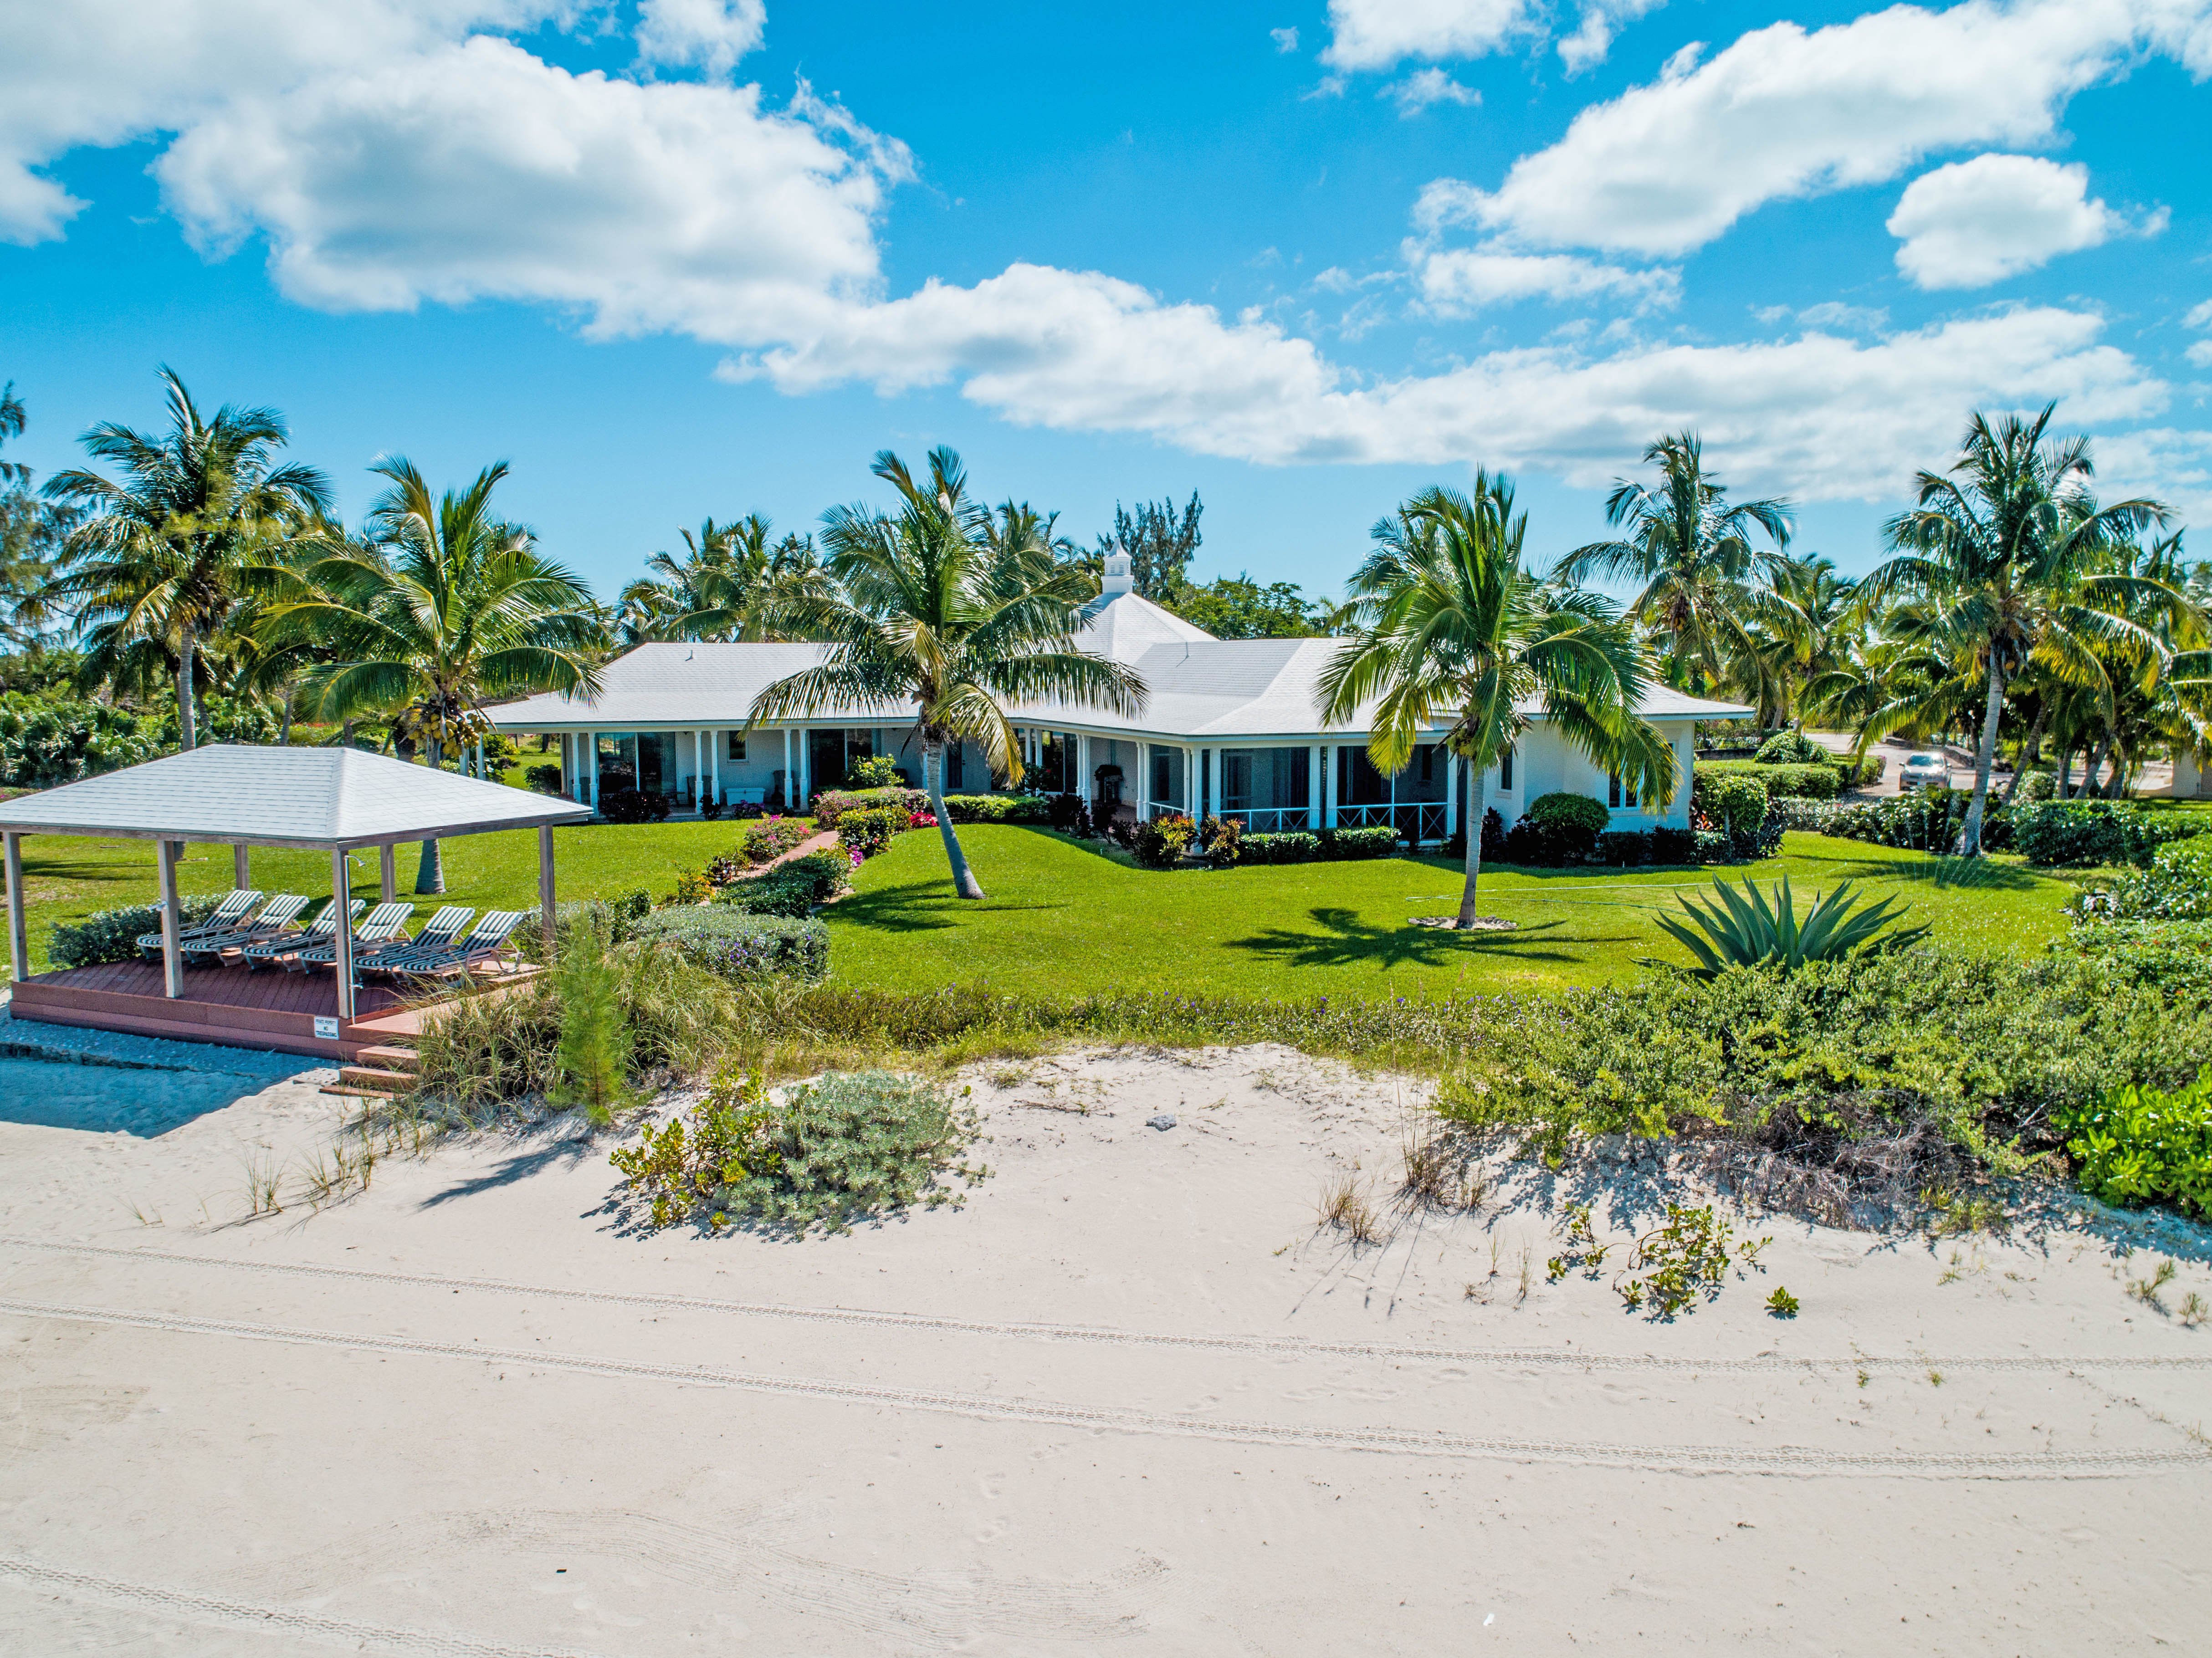 Single Family Home for sale in O'Zone in Cape Santa Maria Galliots Cay, Cape Santa Maria, Long Island   , Bahamas